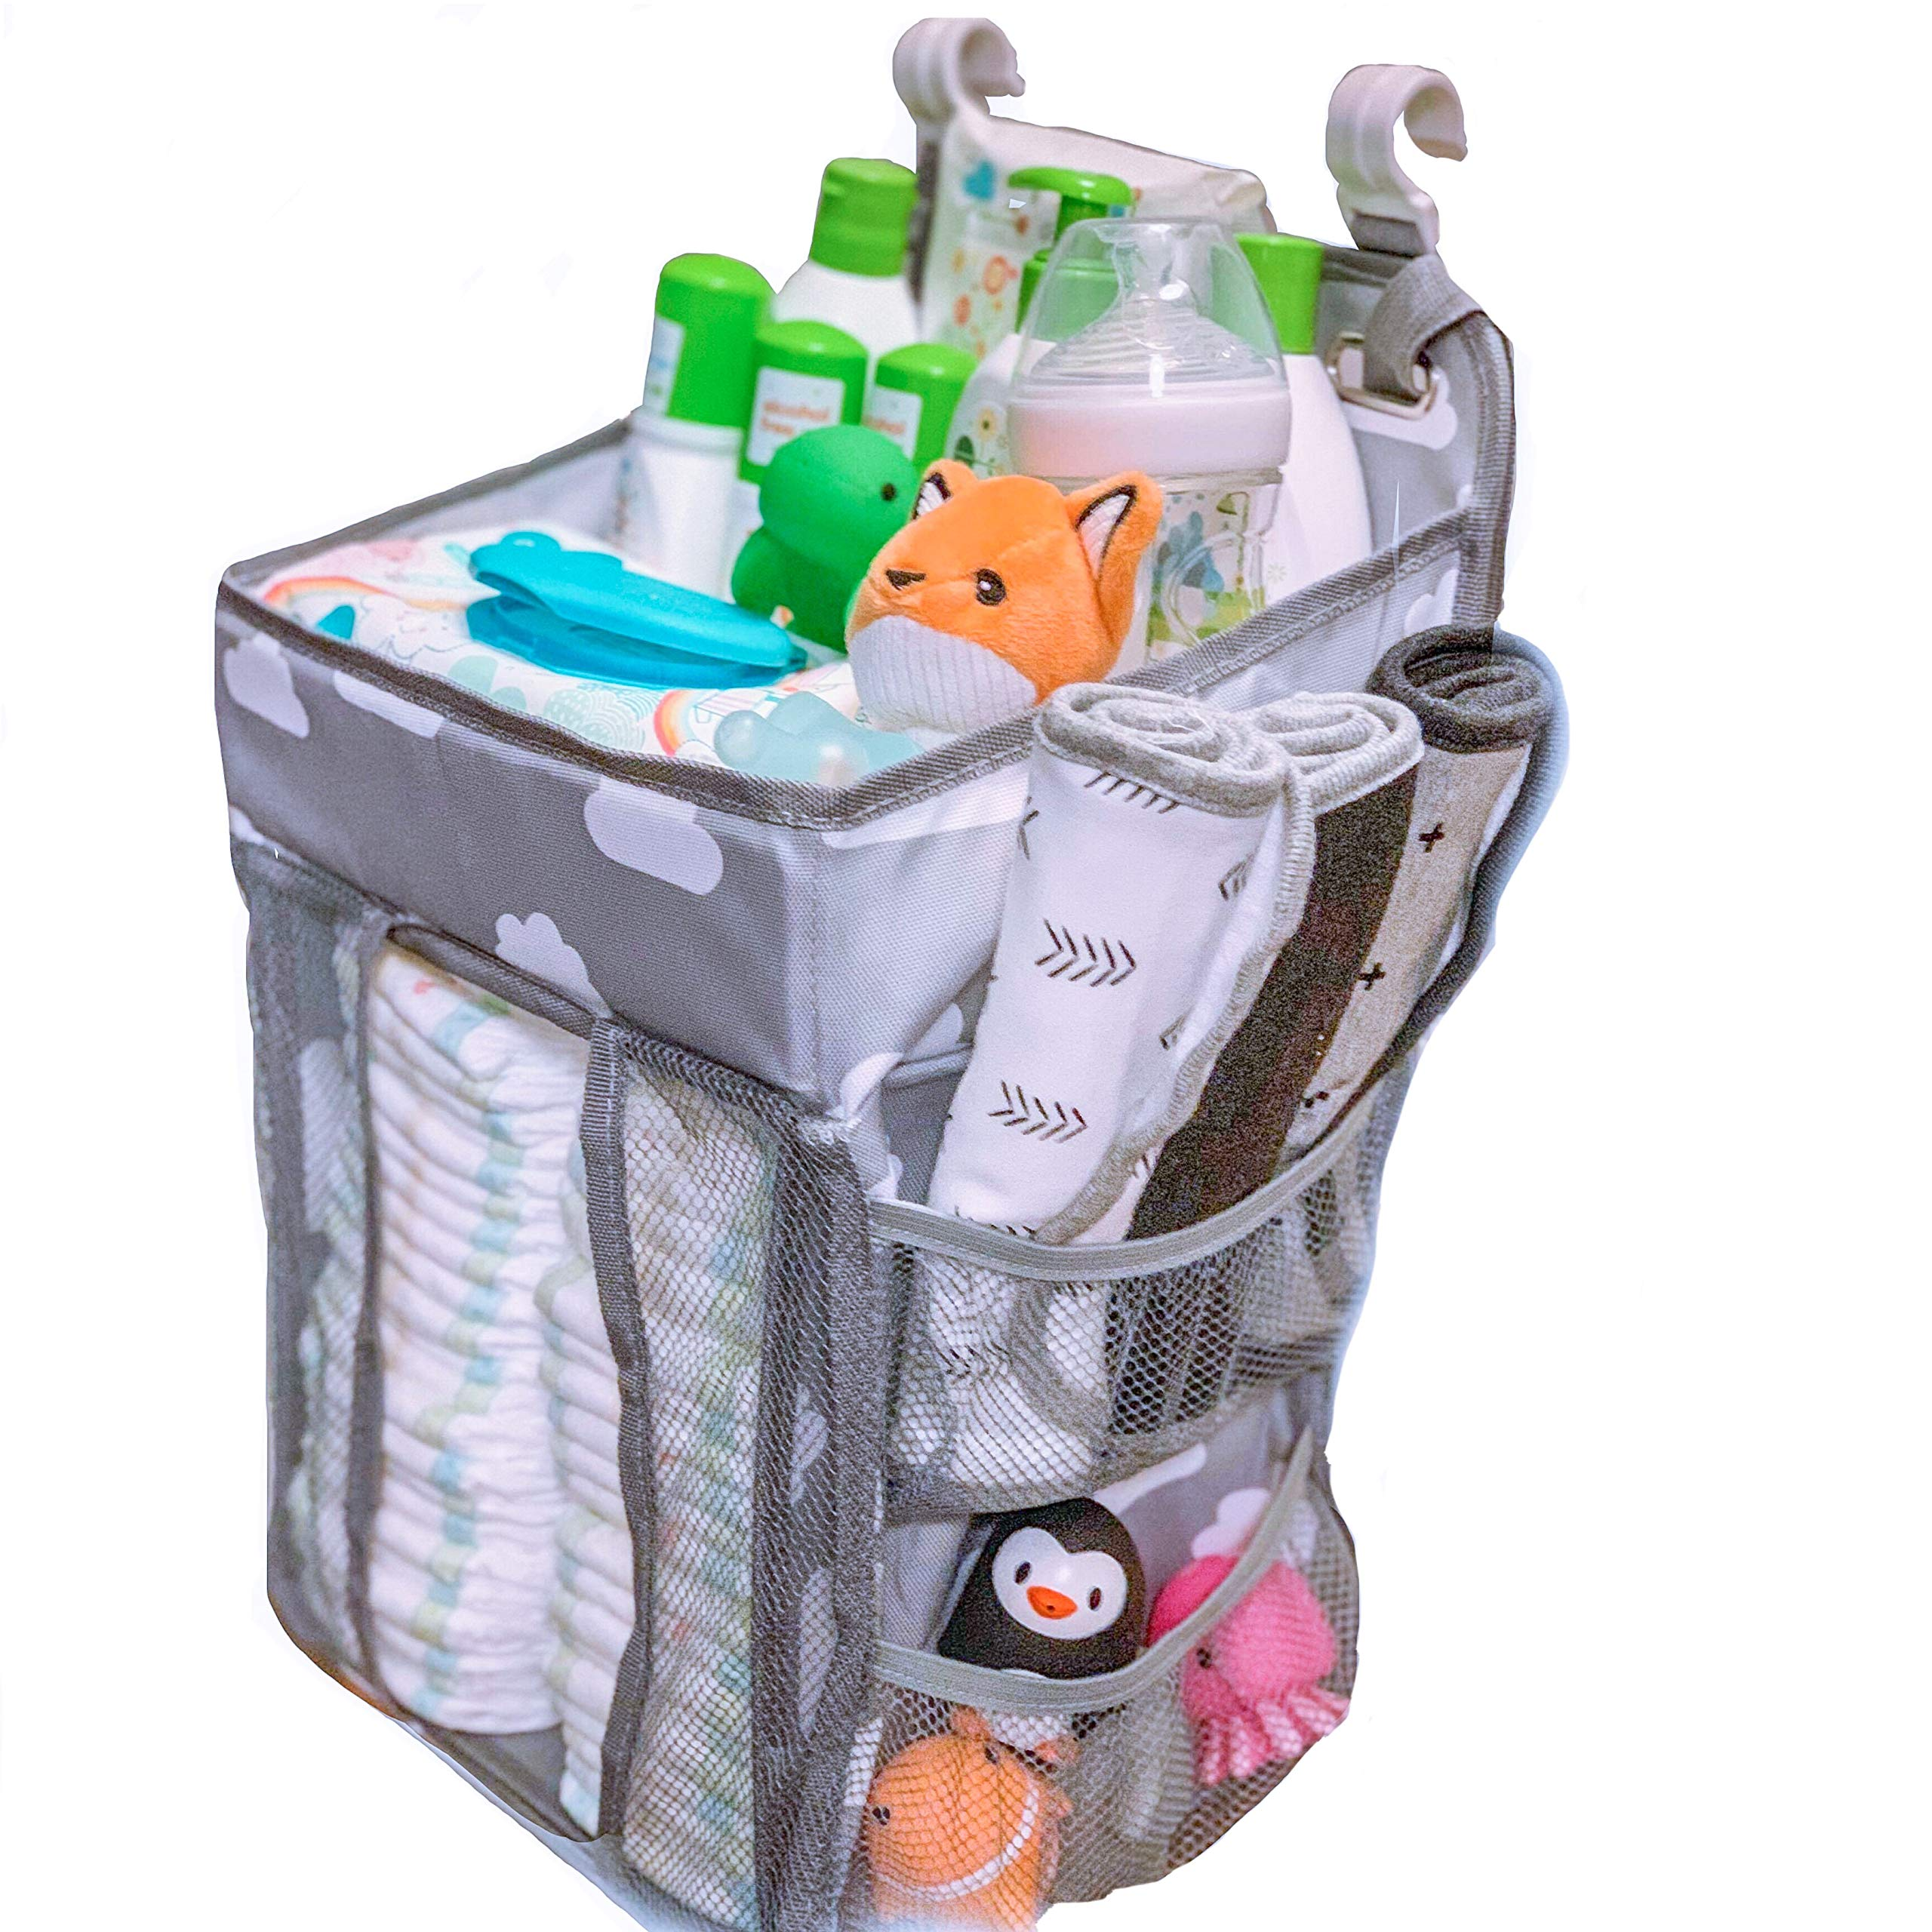 Malak Nursery Baby Crib Caddy Organizer Hanging Portable Fit All Crib Sizes Storage Organizer for All Baby Essentials Essentials, Toys & Lotions, Perfect Baby Shower Gift, Diapers etc. by Malak